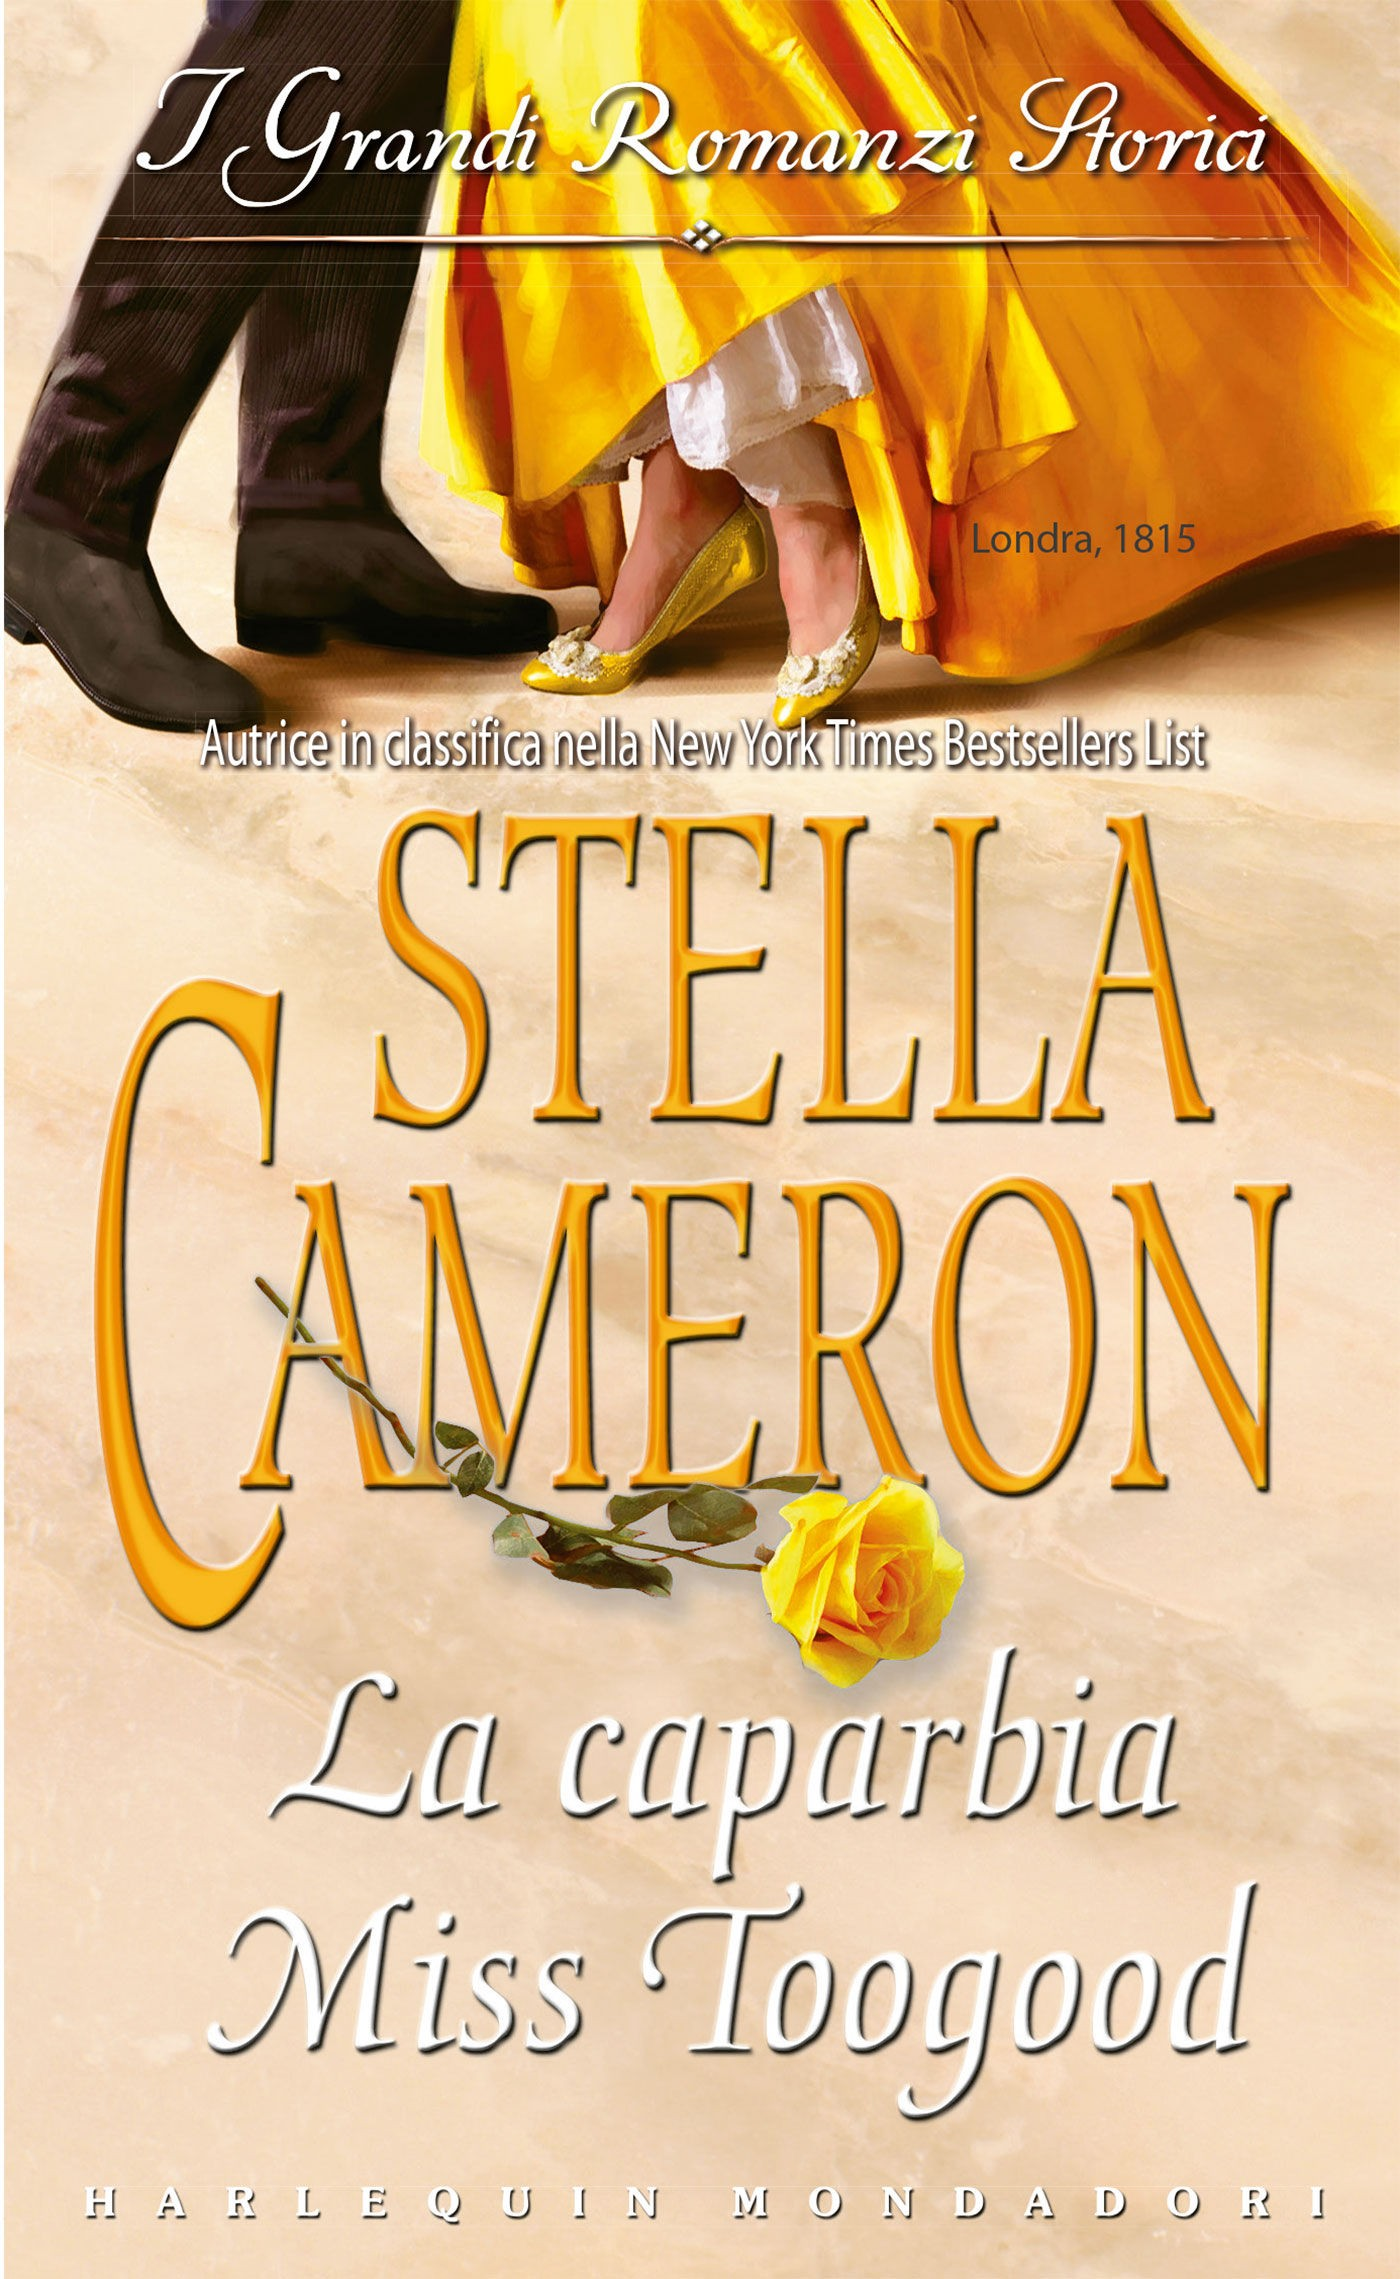 Stella Cameron Ebook